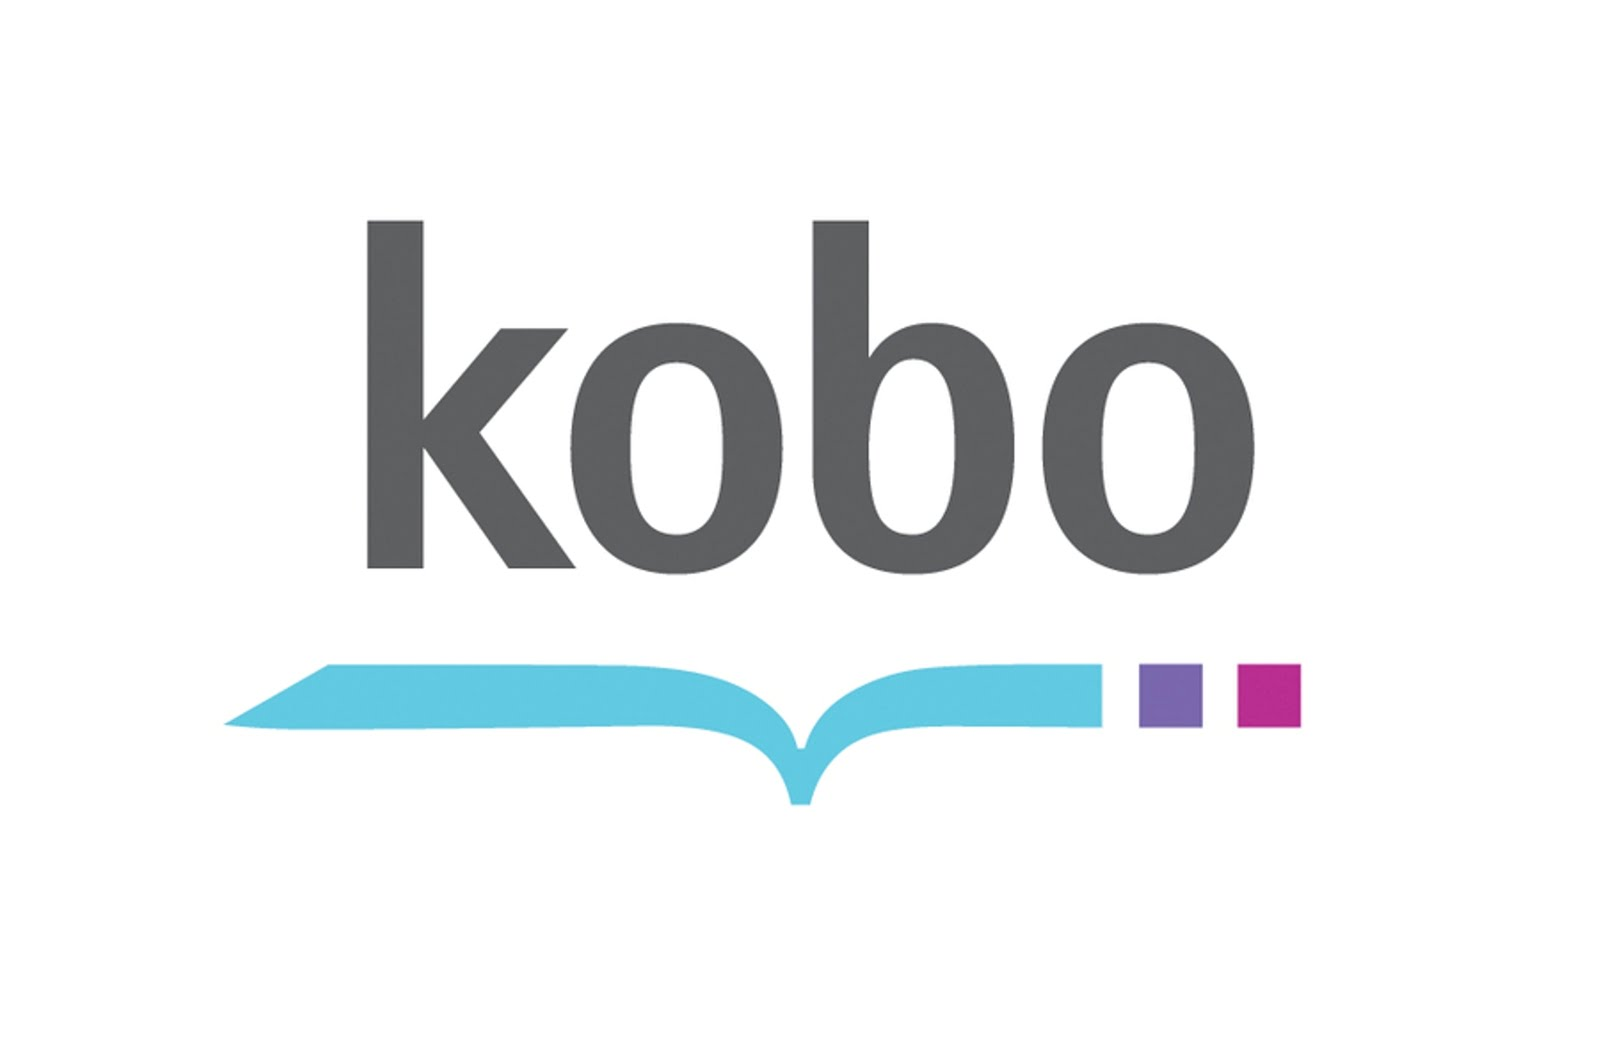 Find my books on KOBO